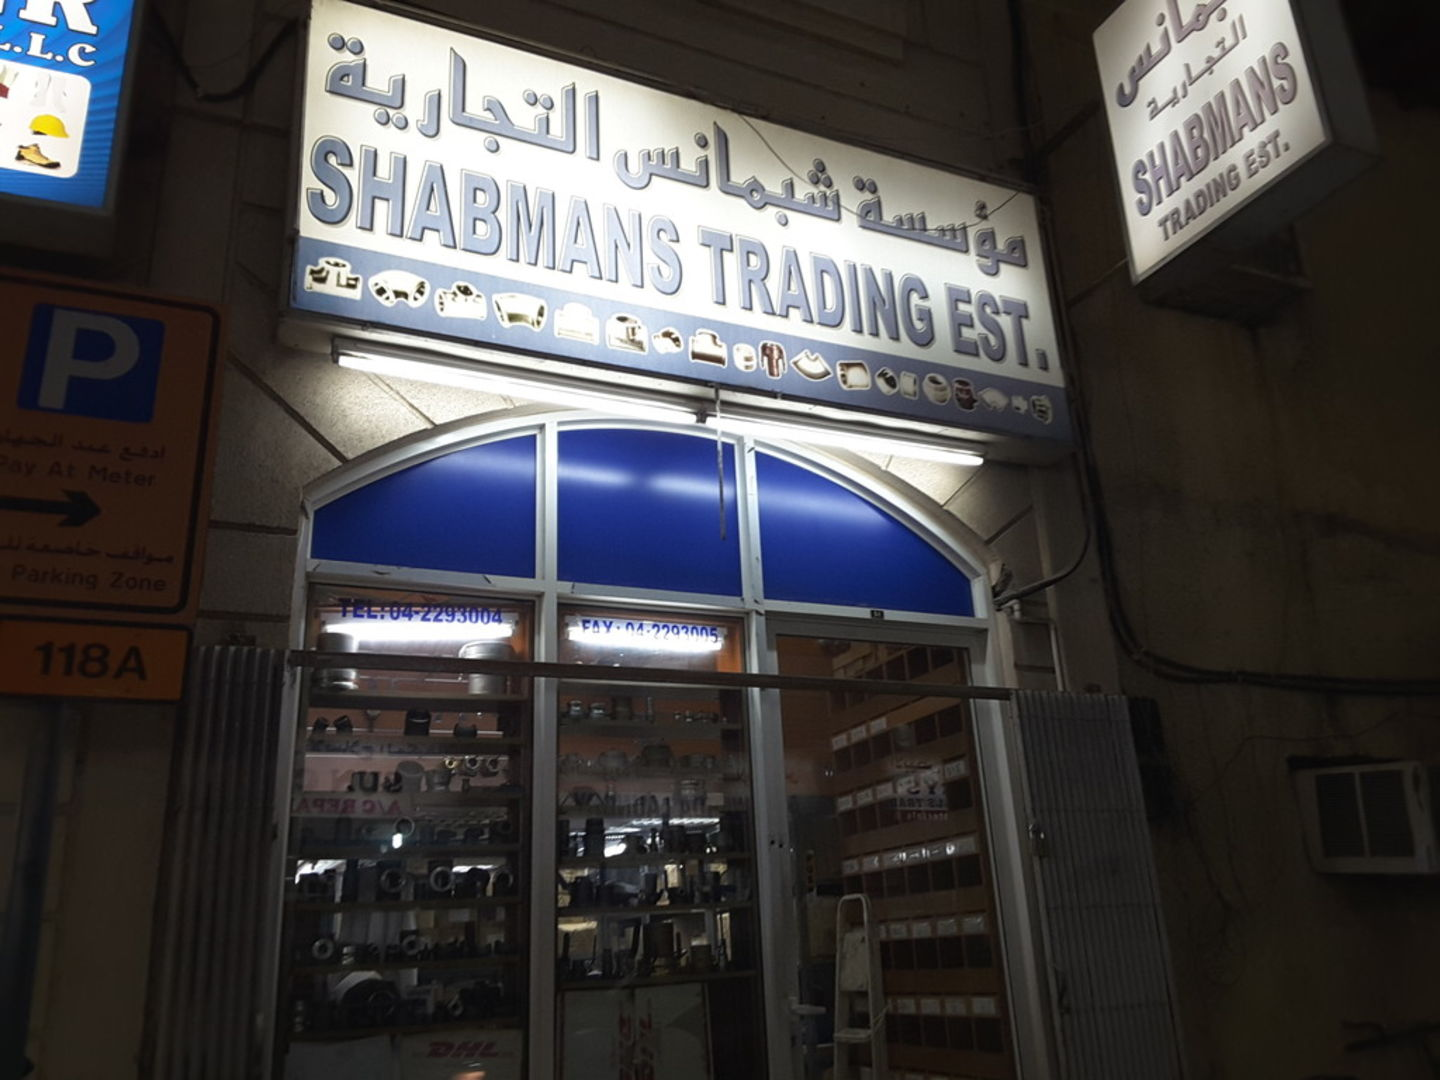 HiDubai-business-shabmans-trading-est-home-safety-security-al-rigga-dubai-2